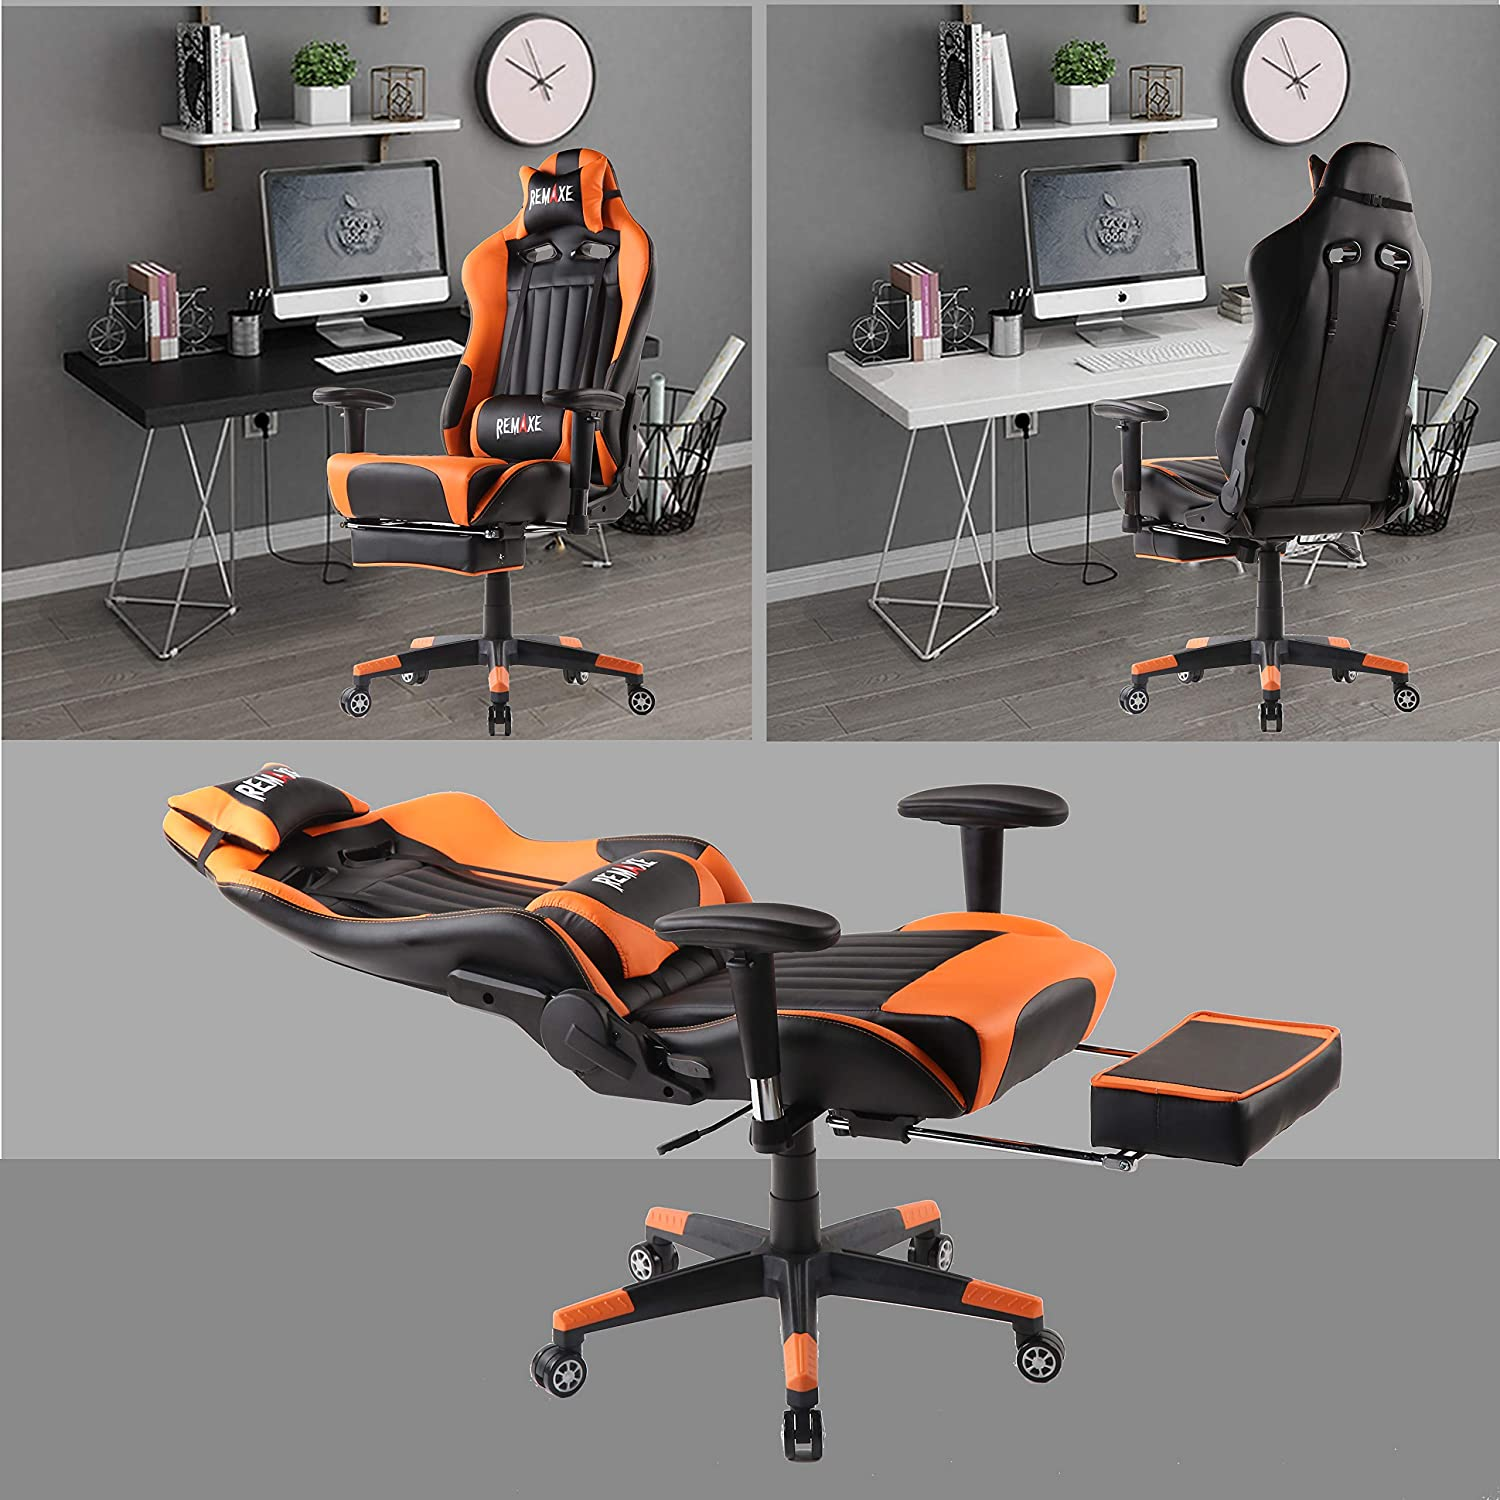 High Back Ergonomic Gaming Chairs PC Gaming Chair Computer Racing Chair Office Chair Desk Chair Video Gaming Chair Swivel Executive Leather Chair with Lumbar Support and Headrest Blue